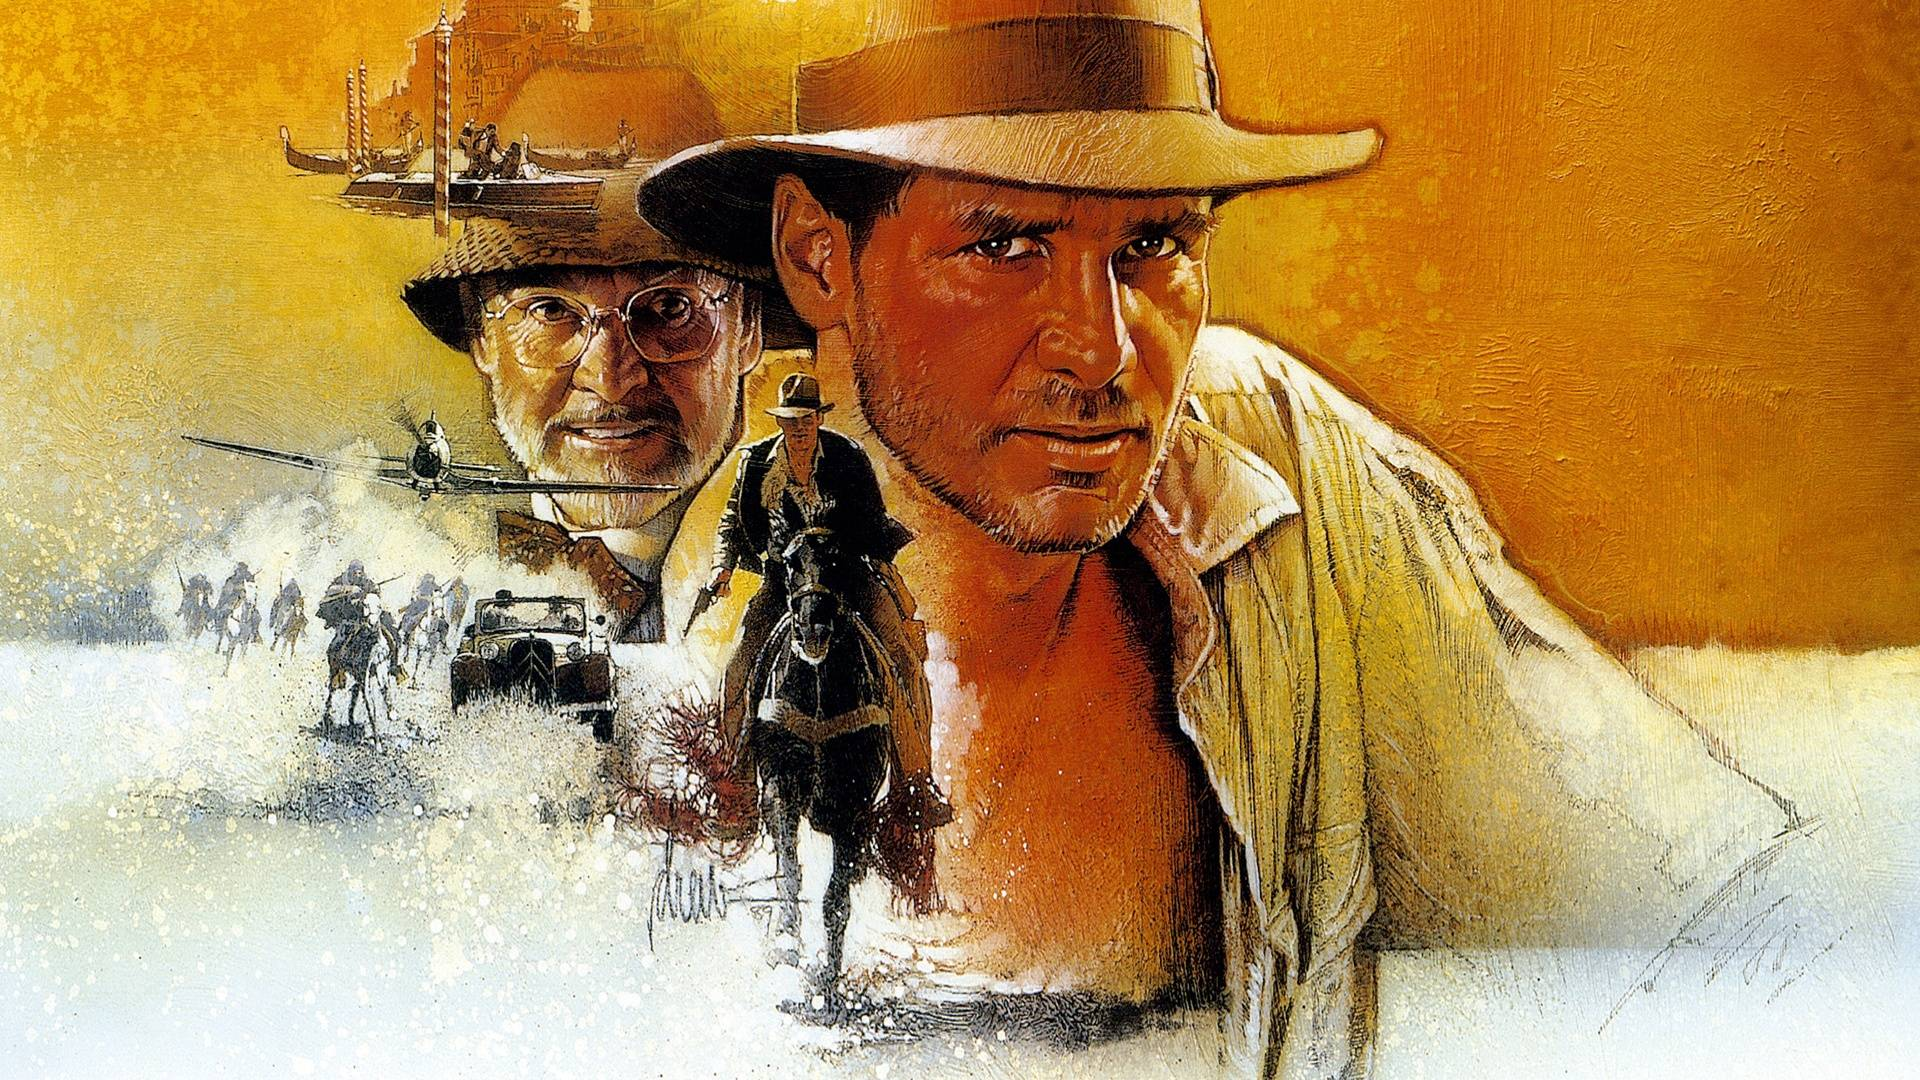 Hot Indiana Jones Images, G.sFDcY